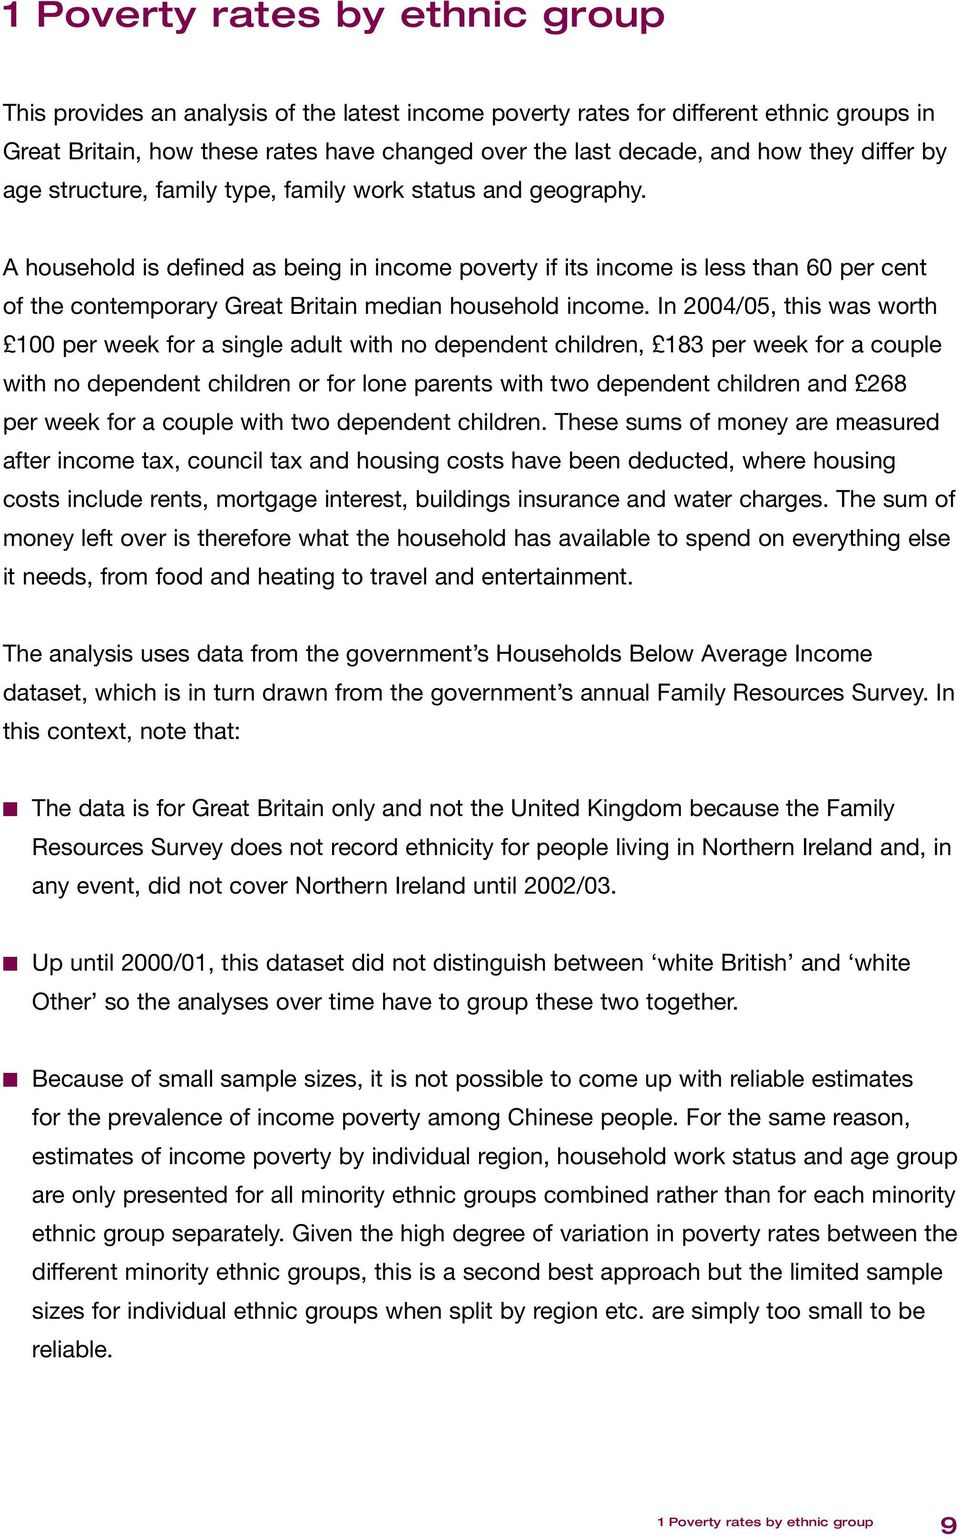 A household is defined as being in income poverty if its income is less than 60 per cent of the contemporary Great Britain median household income.